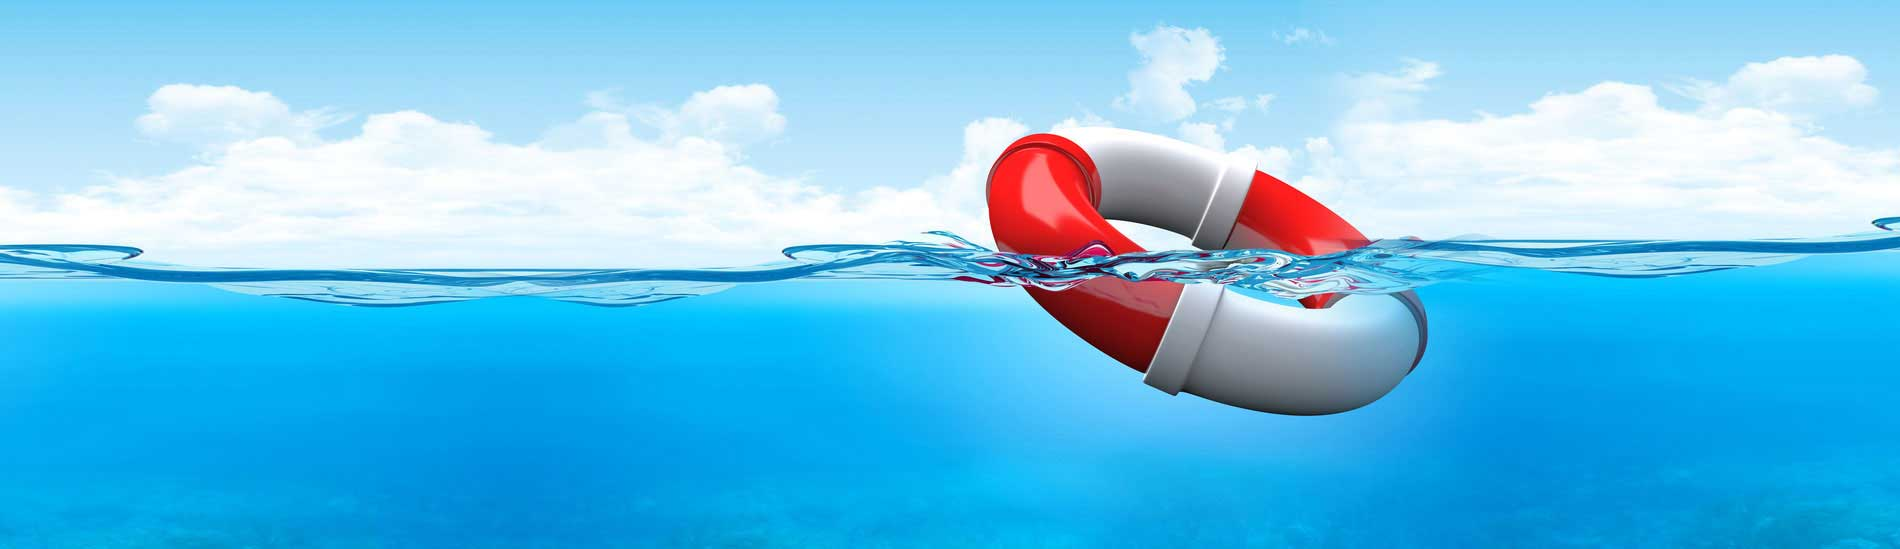 We're your lifesavers in the salty sea of insurance!